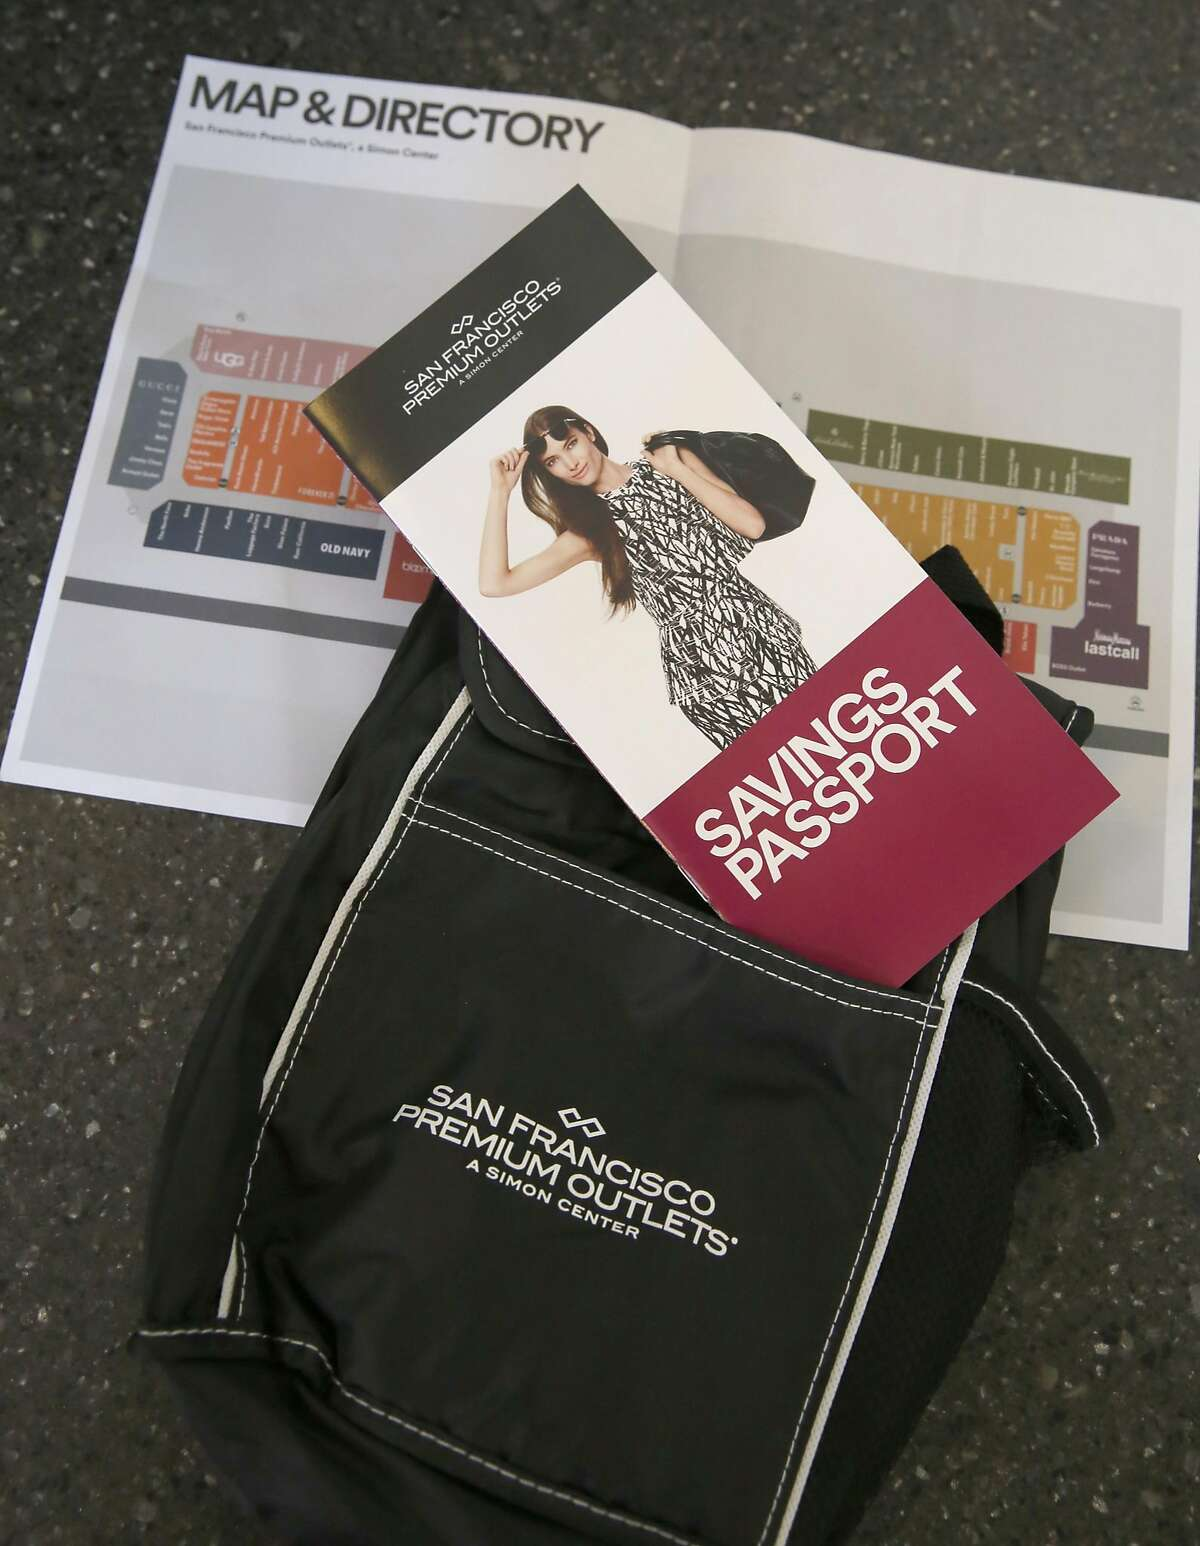 San Francisco Premium Outlets on Wednesday, September 14, 2016, offer a free coupon book to California residents in Livermore, Calif.